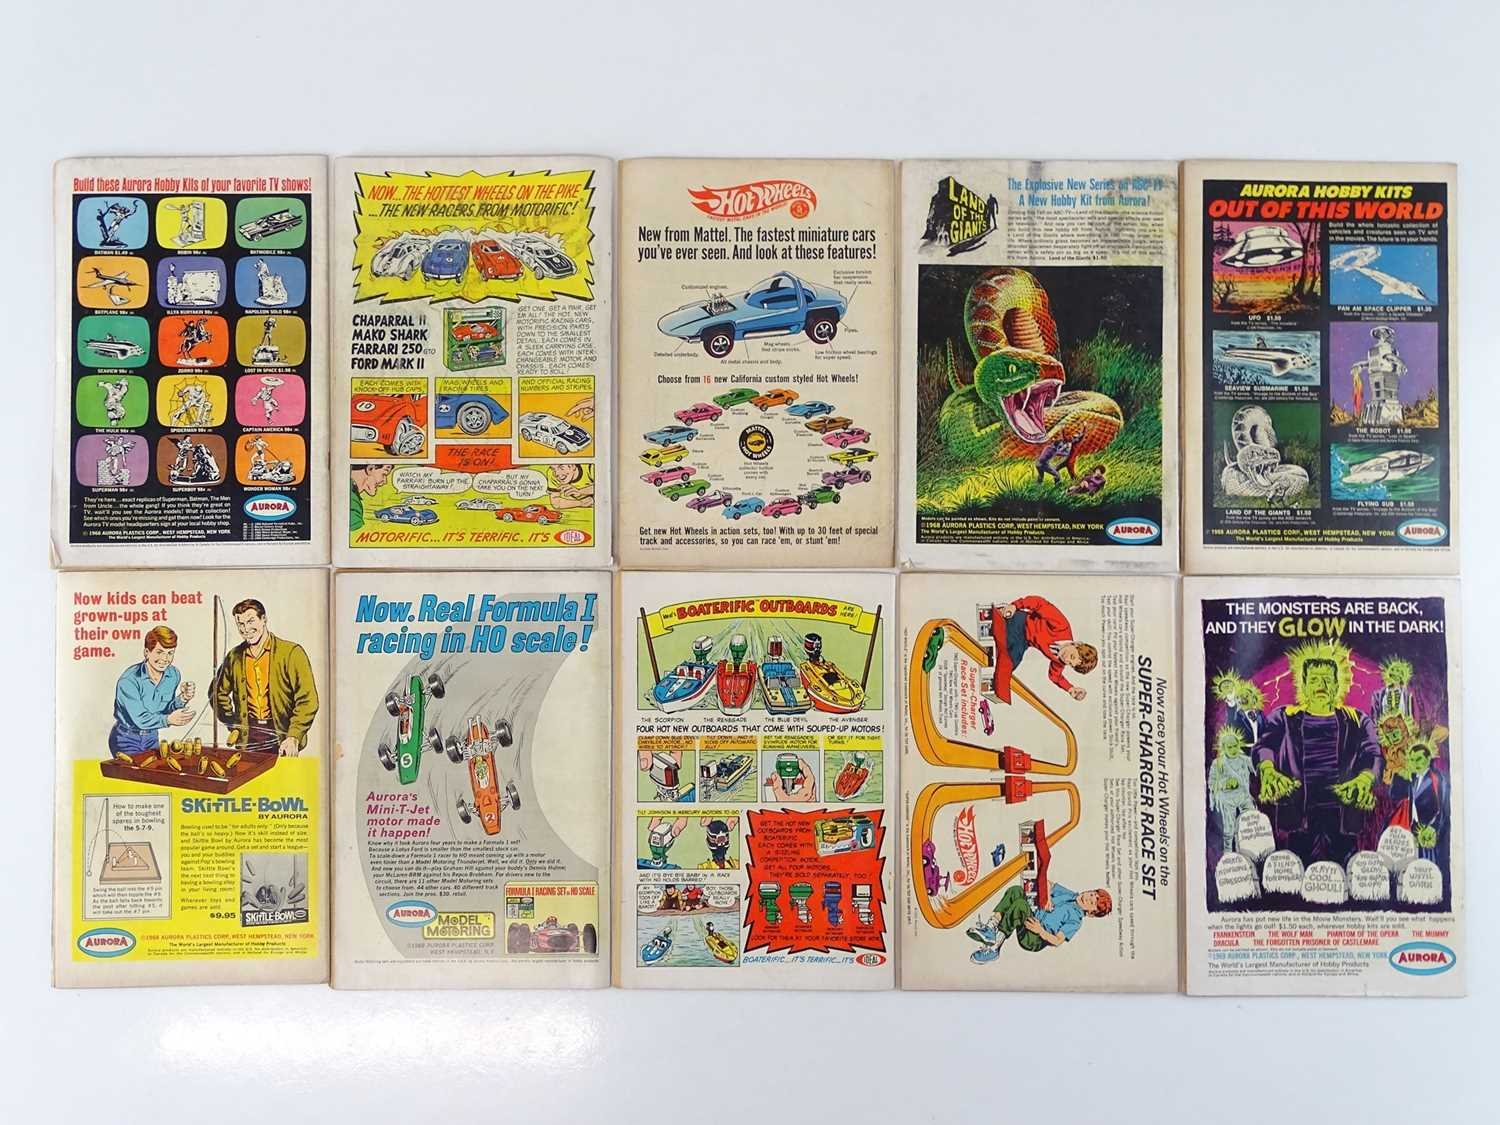 SUPERMAN #194, 207, 209, 210, 211, 213, 214, 218, 219, 220 - (10 in Lot) - (1967/69 - DC - UK - Image 2 of 2